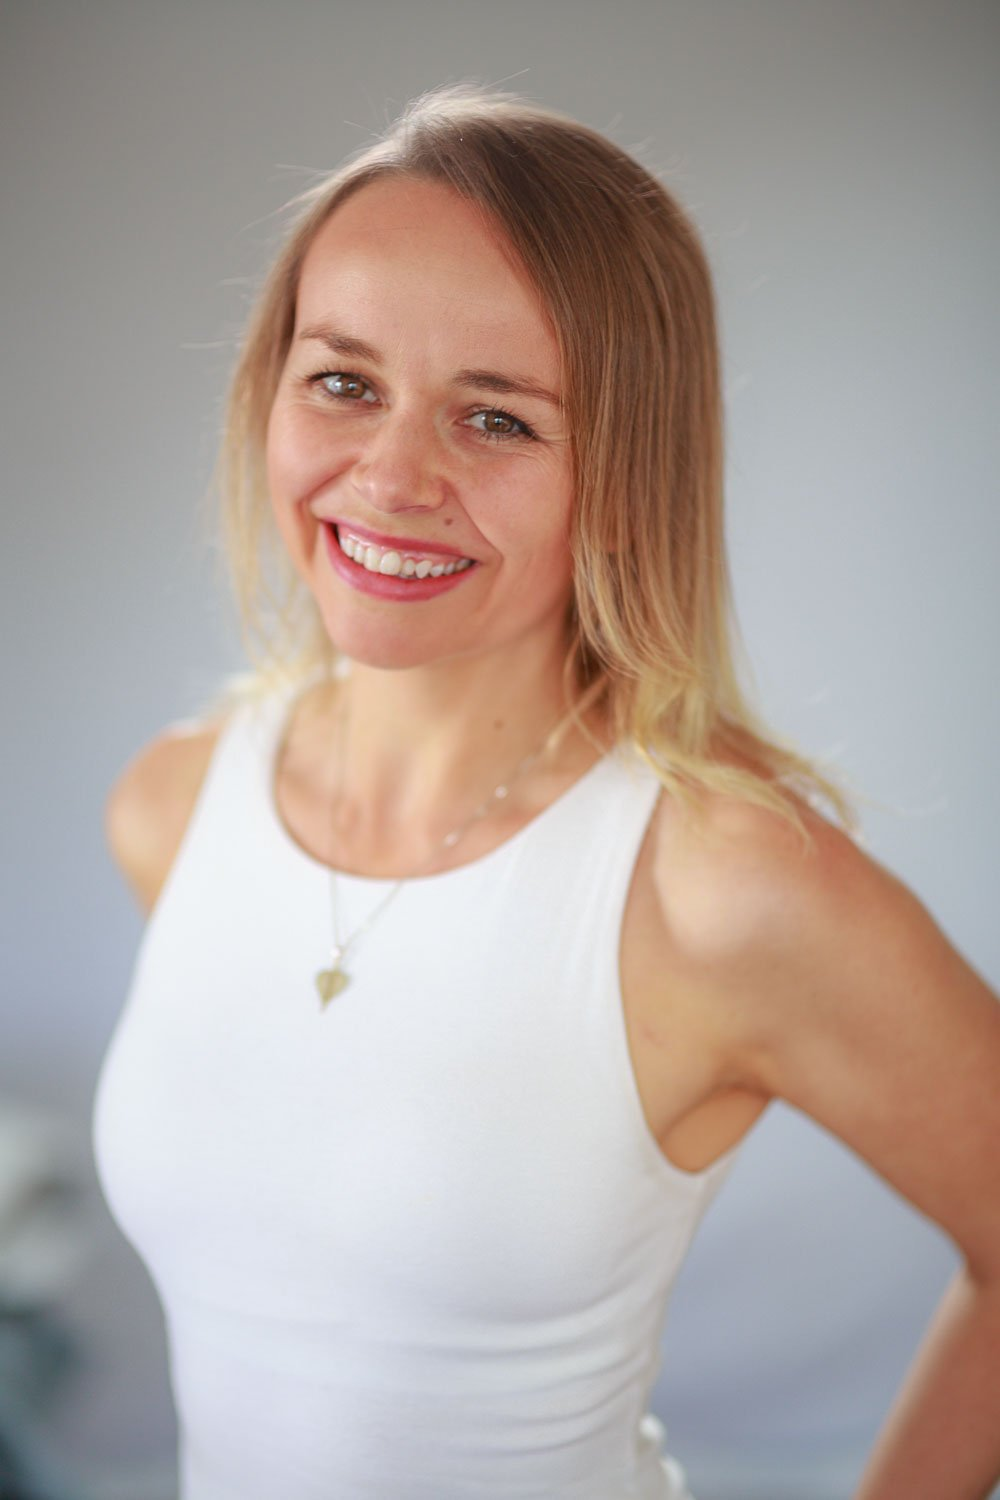 50% OFF 1st Osteopathy Consult with Dr Tara Walker till June 30